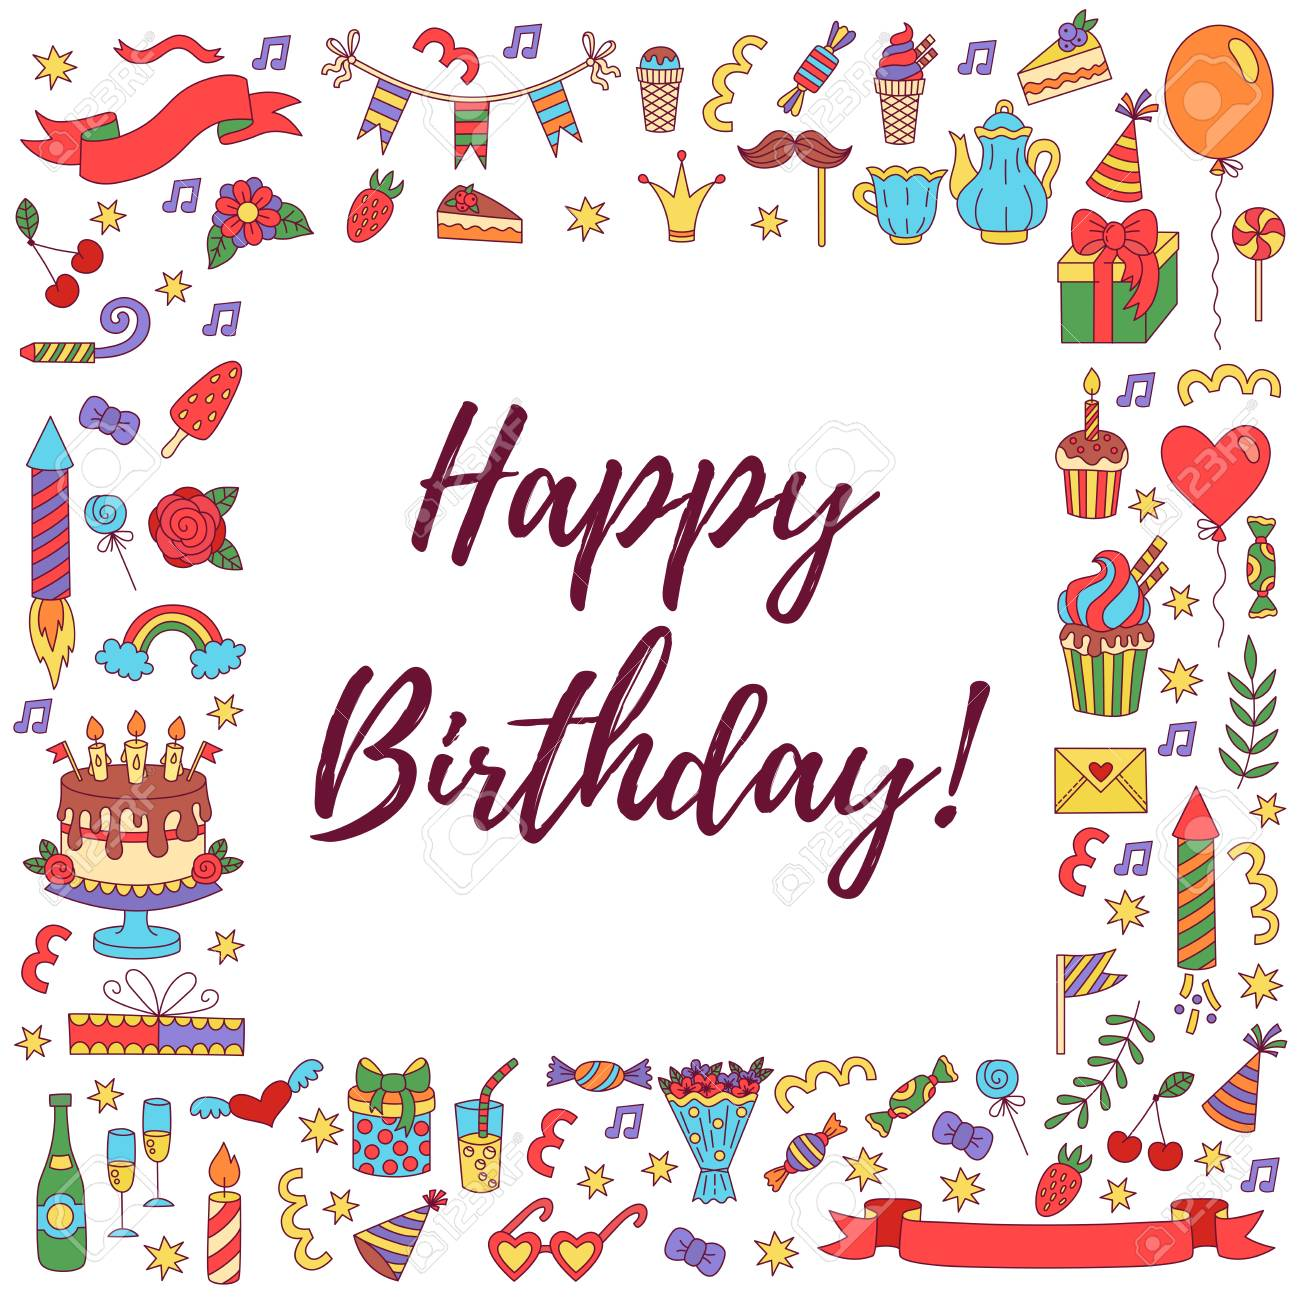 Birthday Party Doodle Square Border Greeting Card Template Royalty